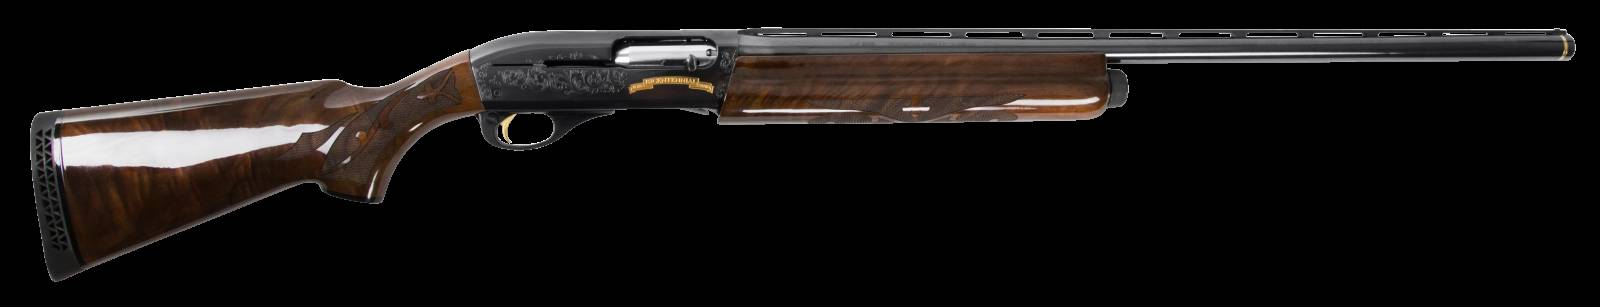 Remington semi auto shotgun history  Rem Model 11 Mfg Dates